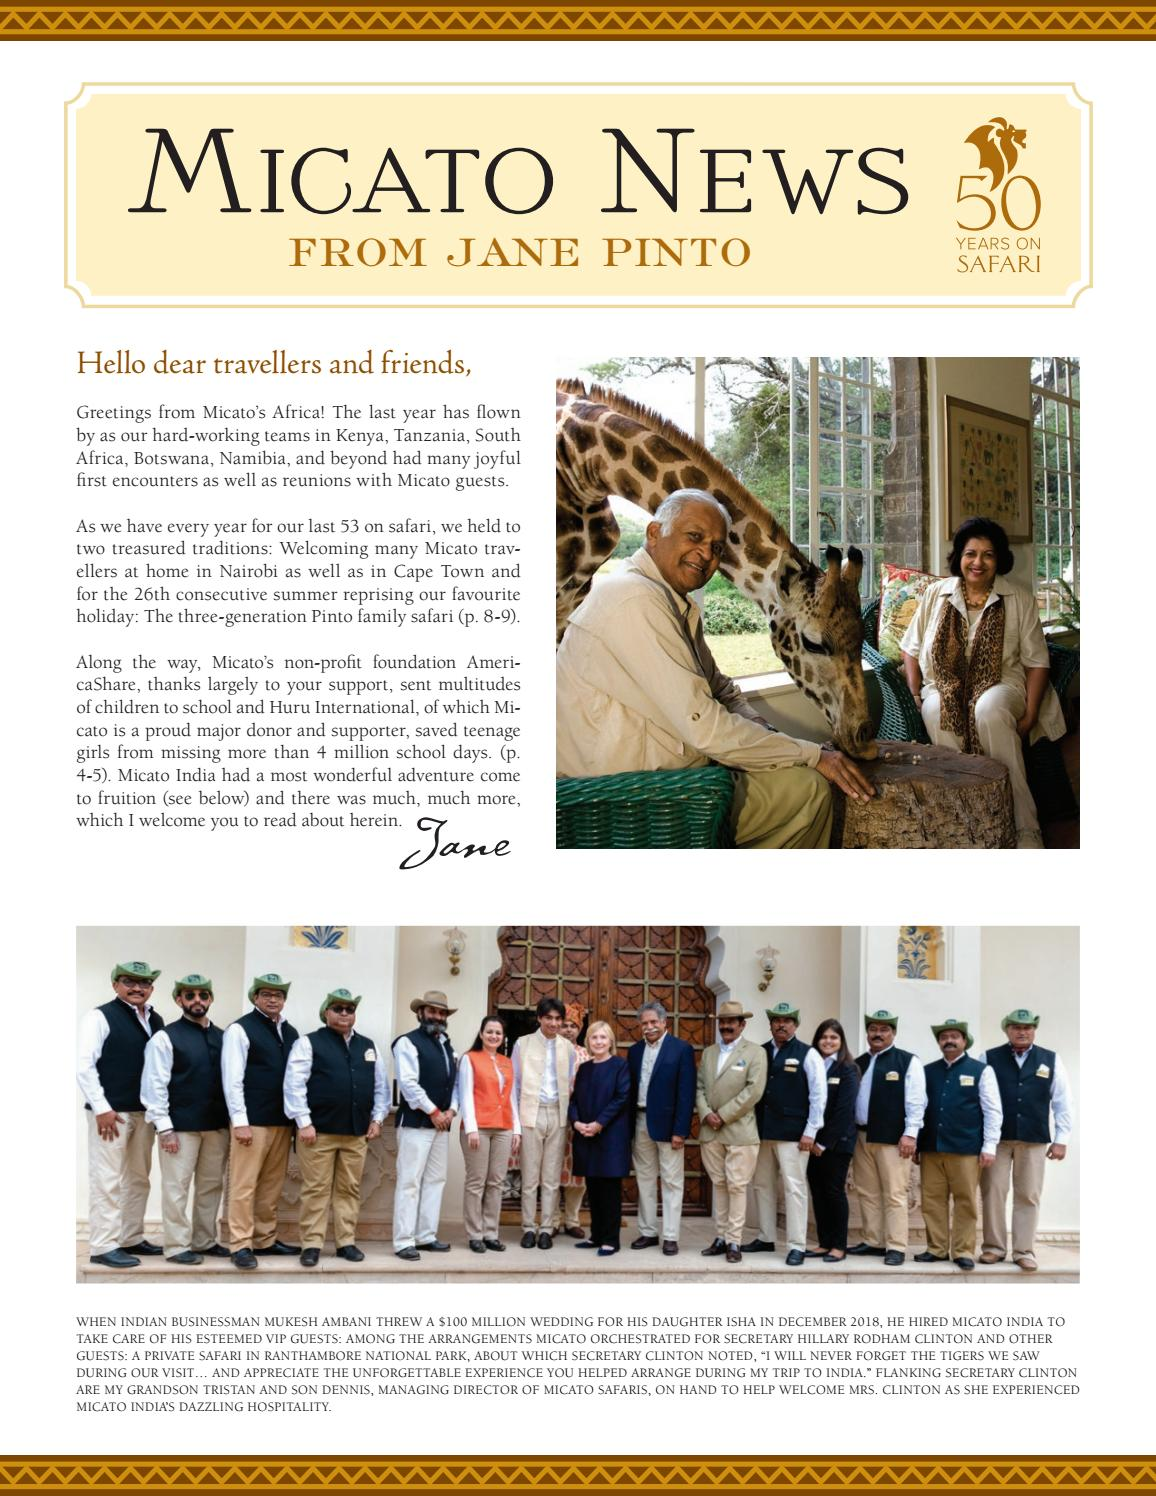 Micato News from Jane Pinto by micato safaris1 - issuu